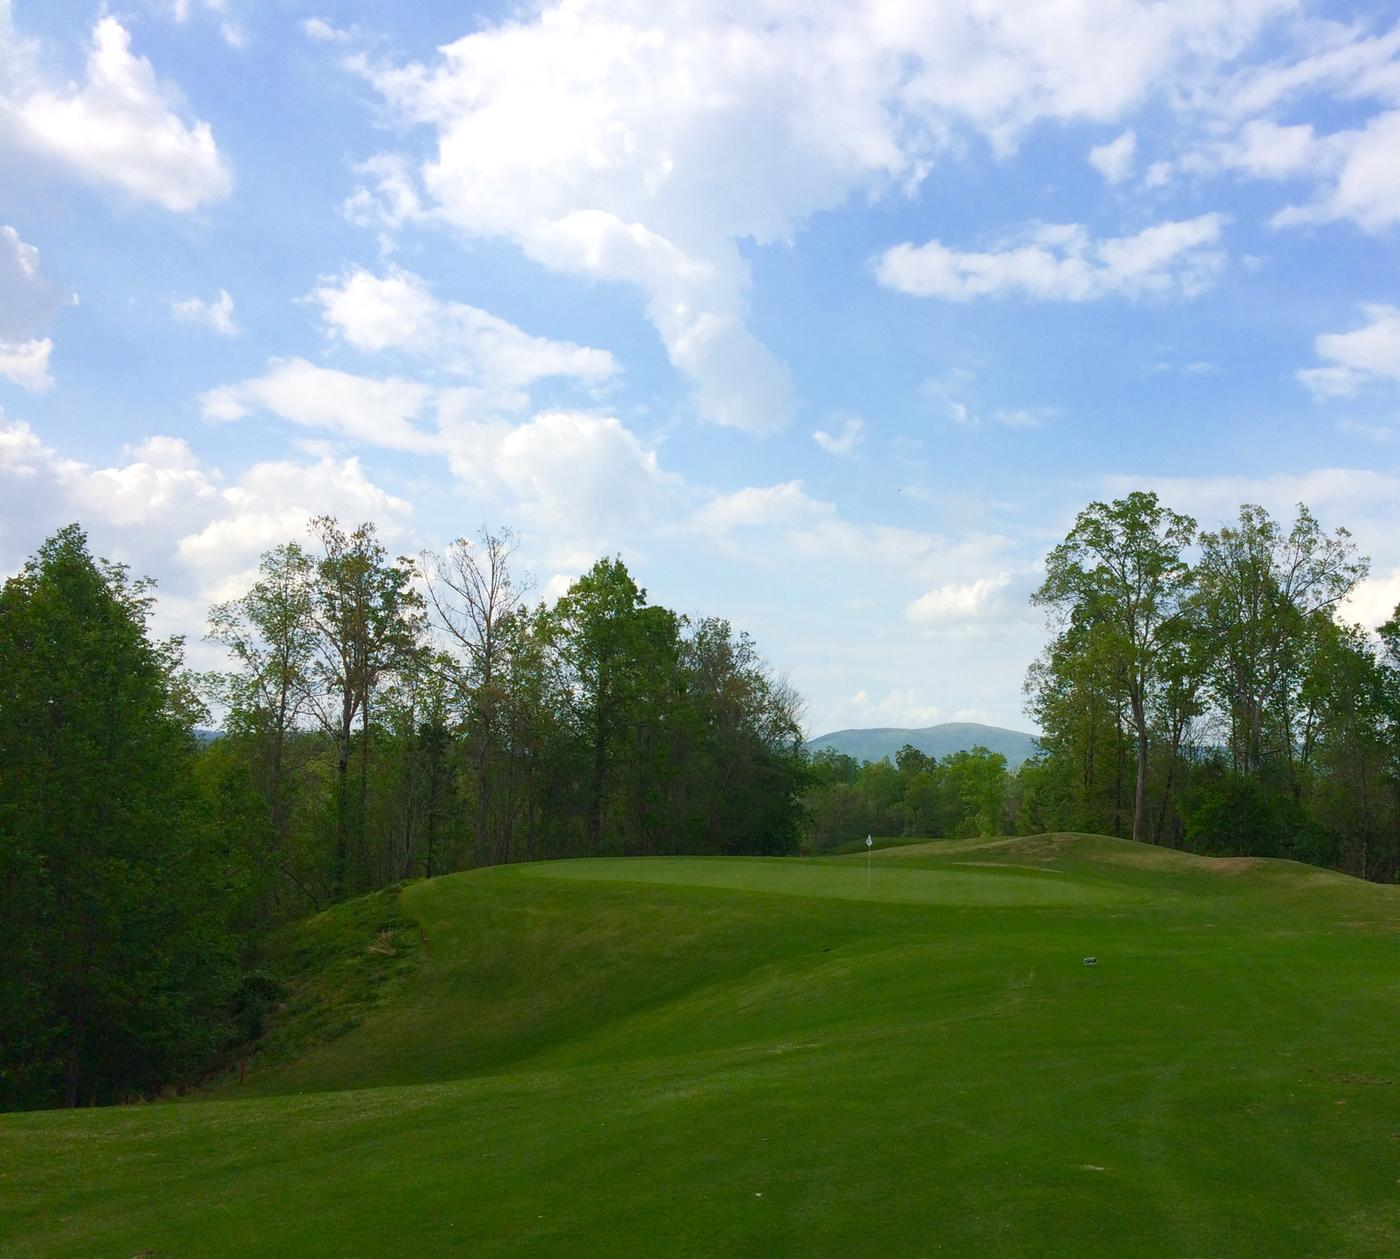 charming cider ridge #5: Par-4, 16th hole